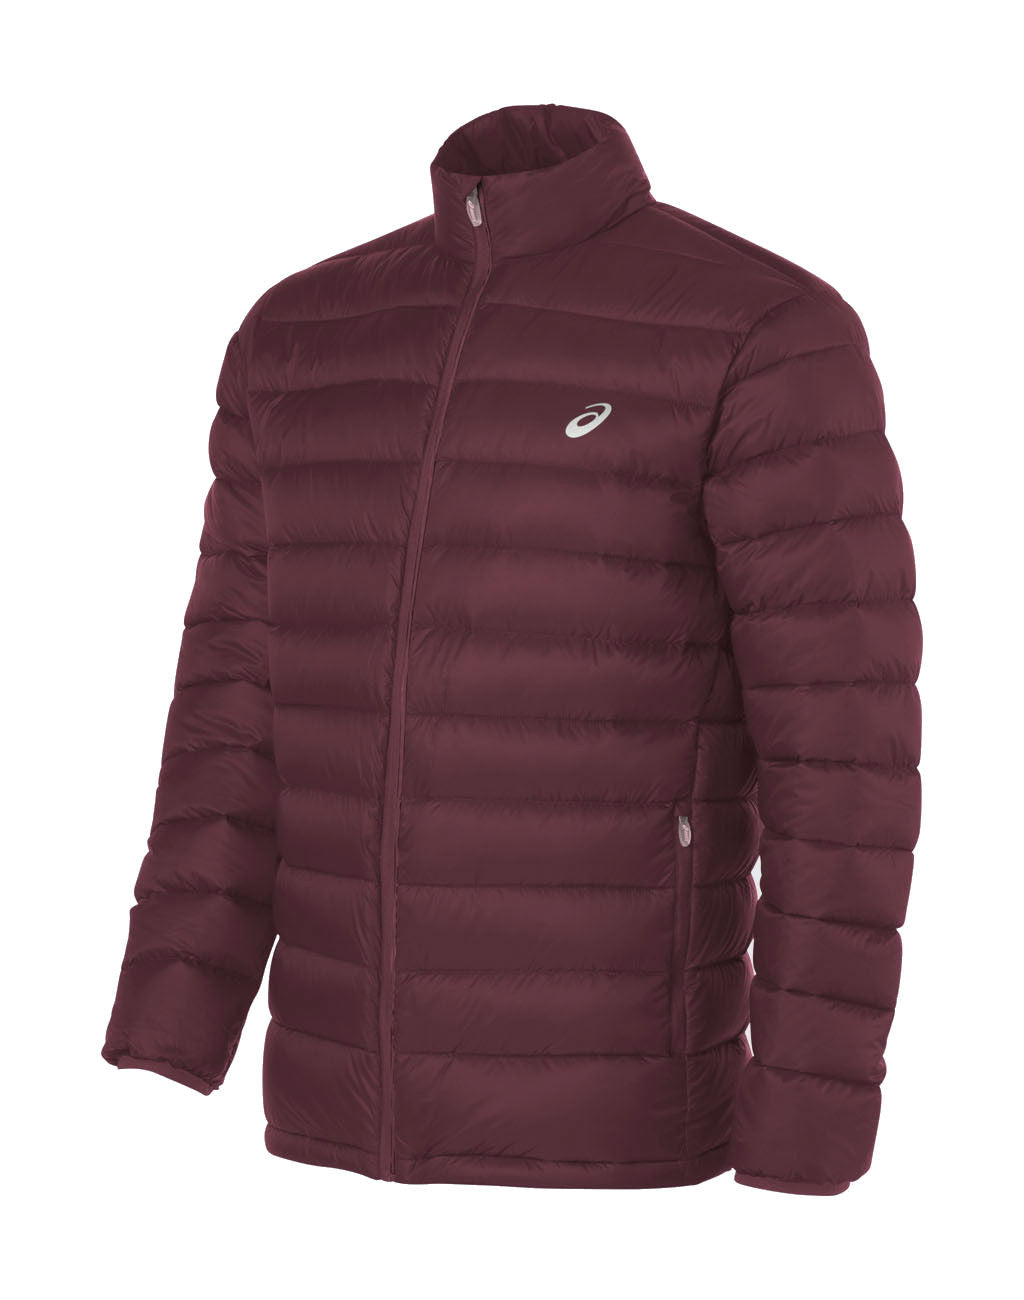 ASICS Down Jacket (Men's)